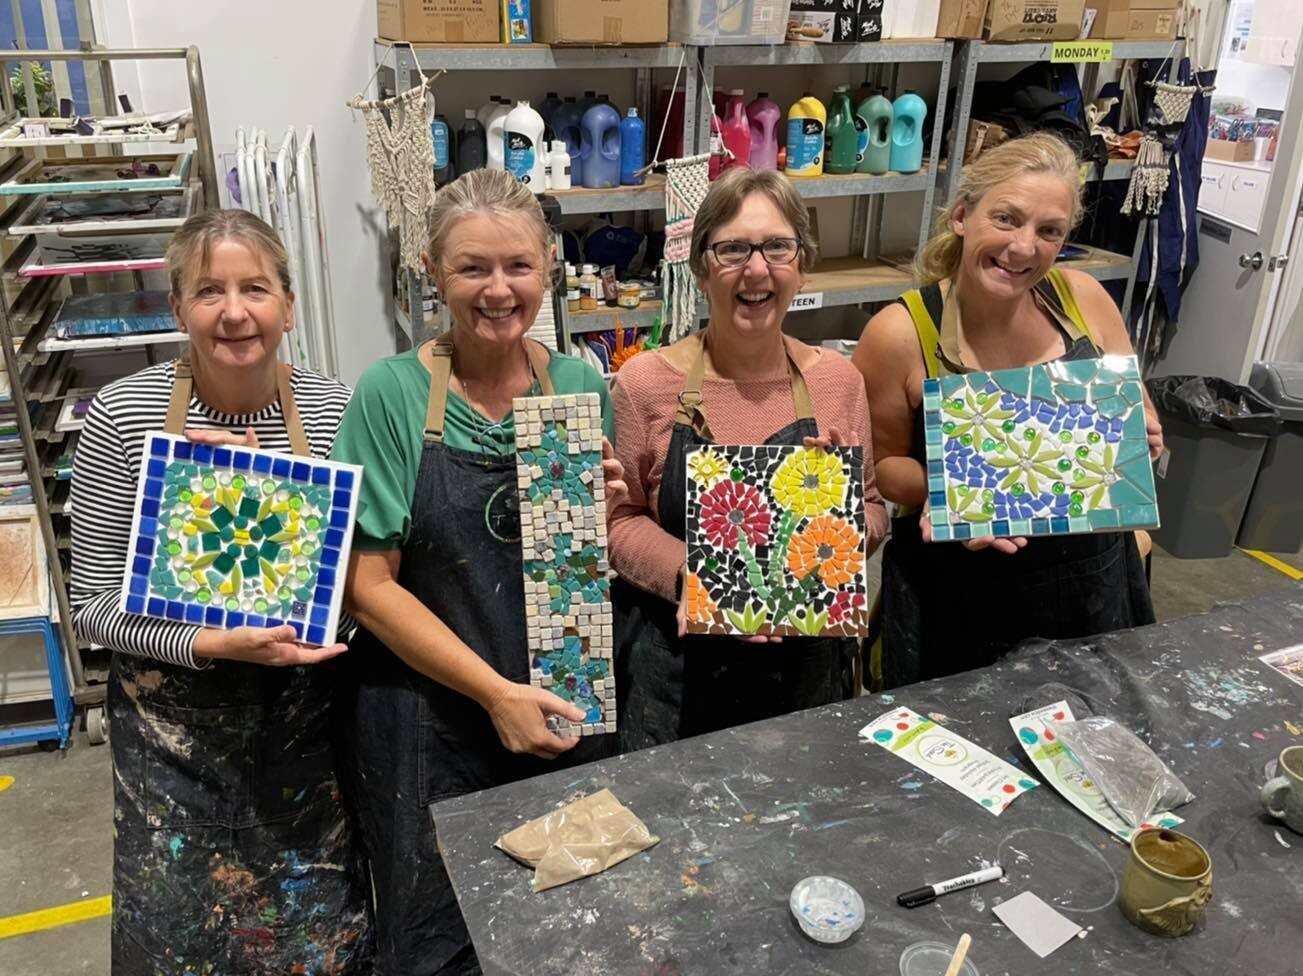 Mosaic Workshop - Tuesday 26th October, 6:30-9pm